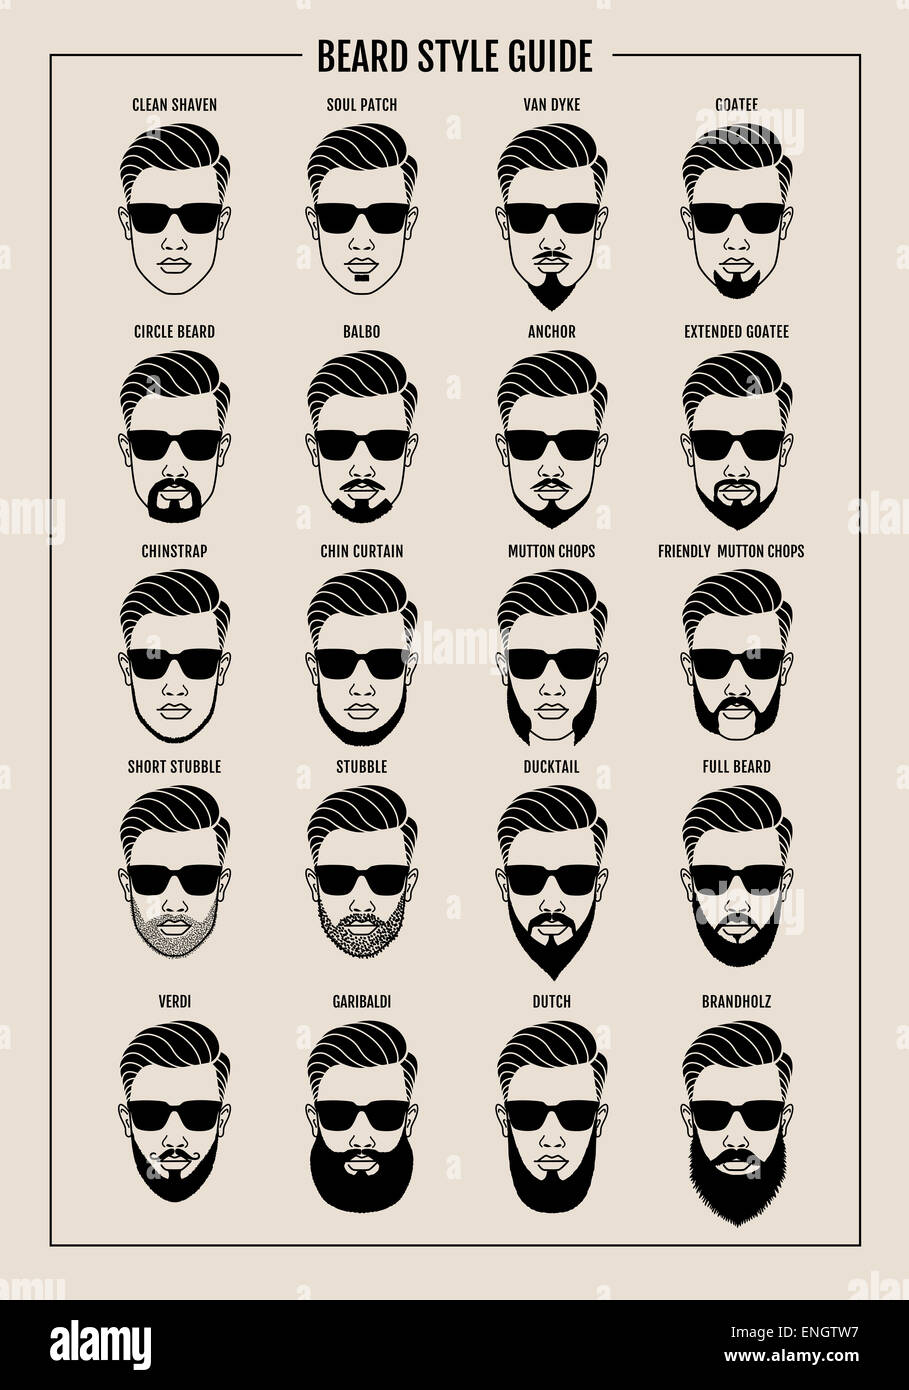 Hipster Beard And Mustache Style Guide Poster Vector